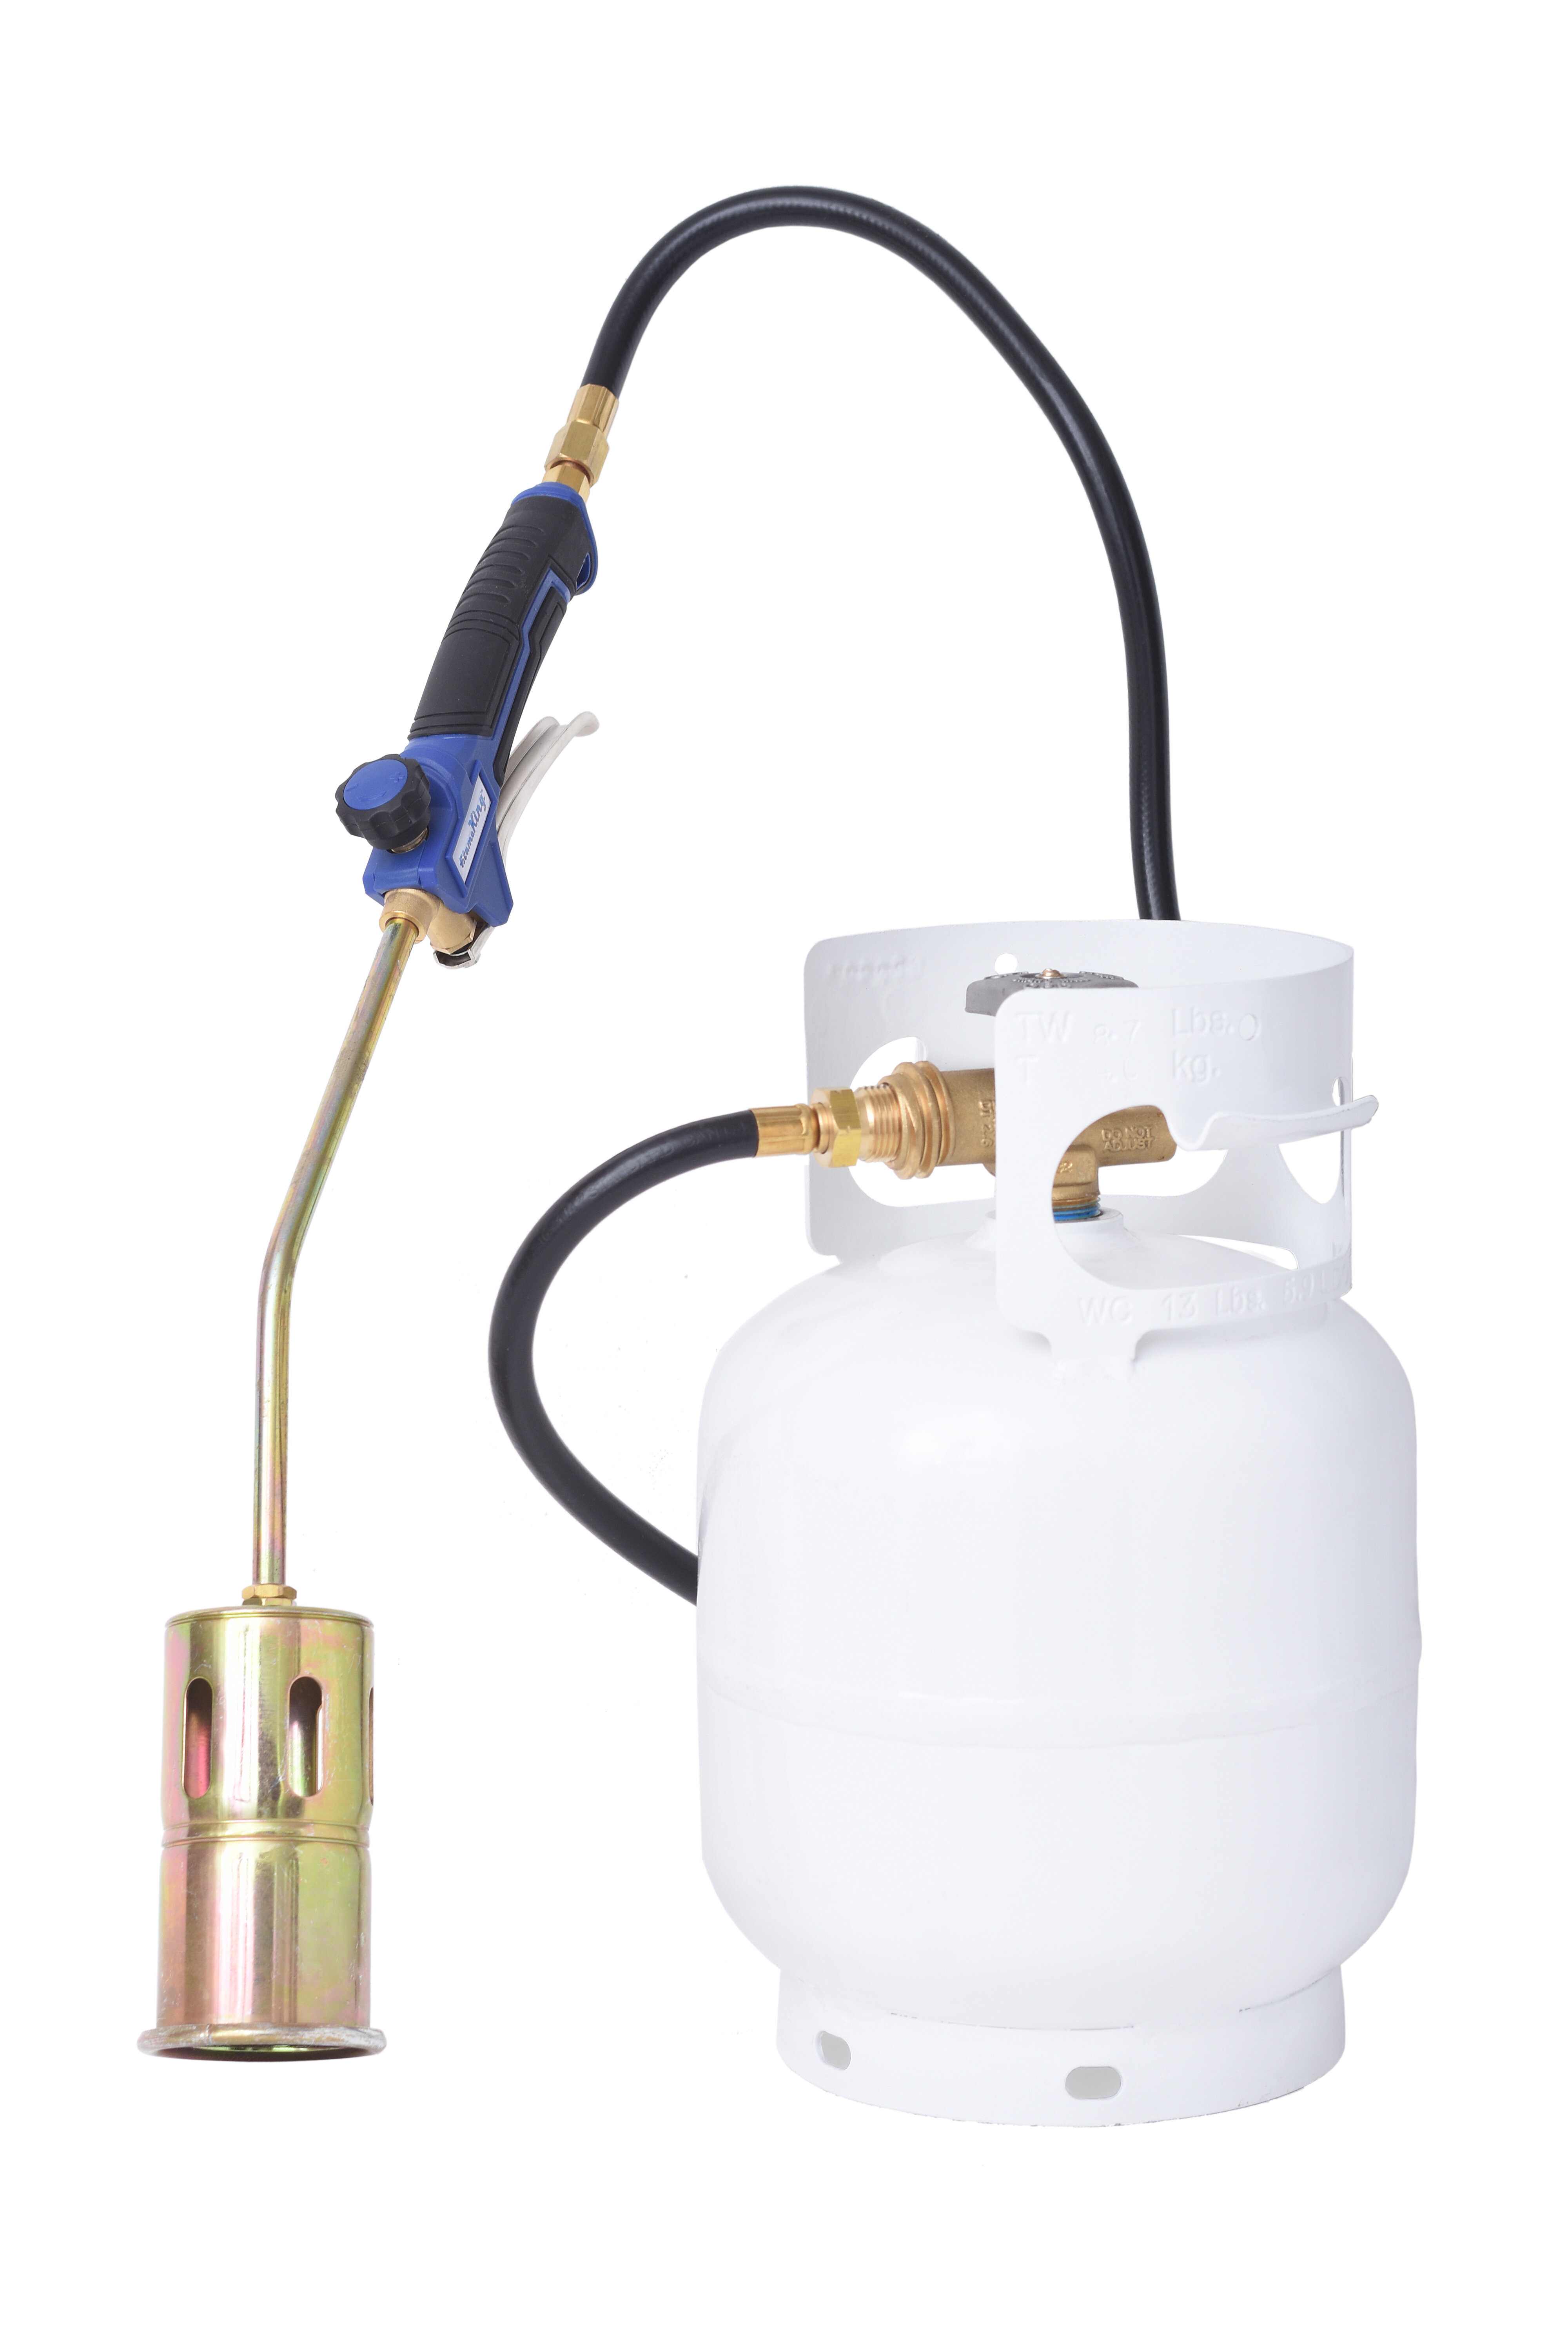 Flame King 320 000 Btu Propane Torch Steel Nozzle With Turbo Blast Trigger And Flow Valve Wayfair